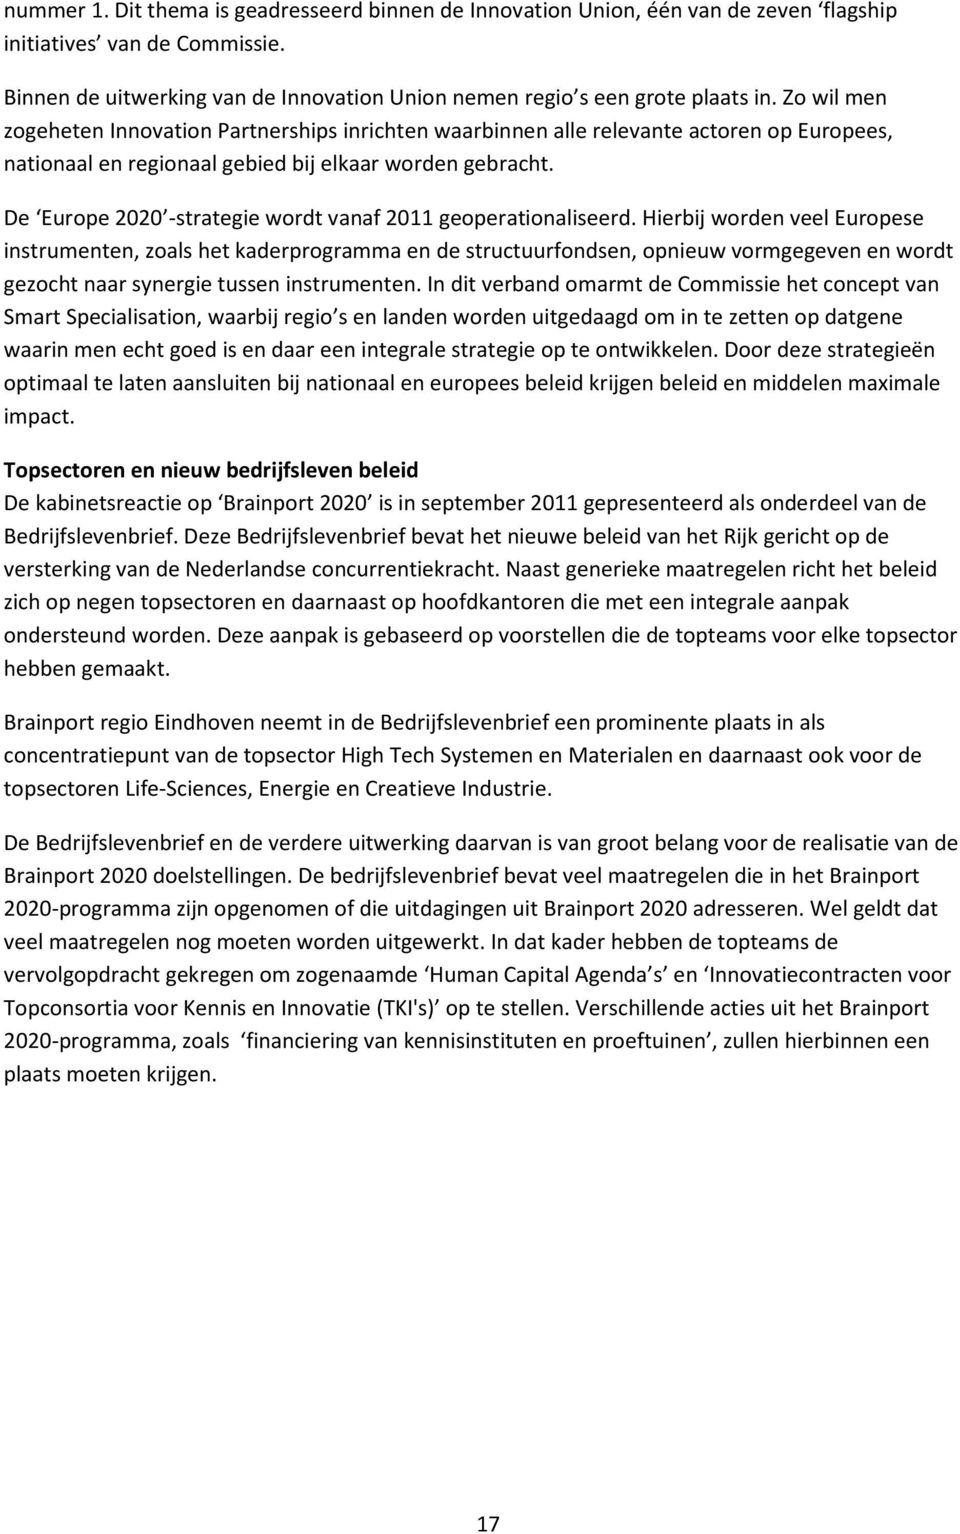 De Europe 2020 -strategie wordt vanaf 2011 geoperationaliseerd.